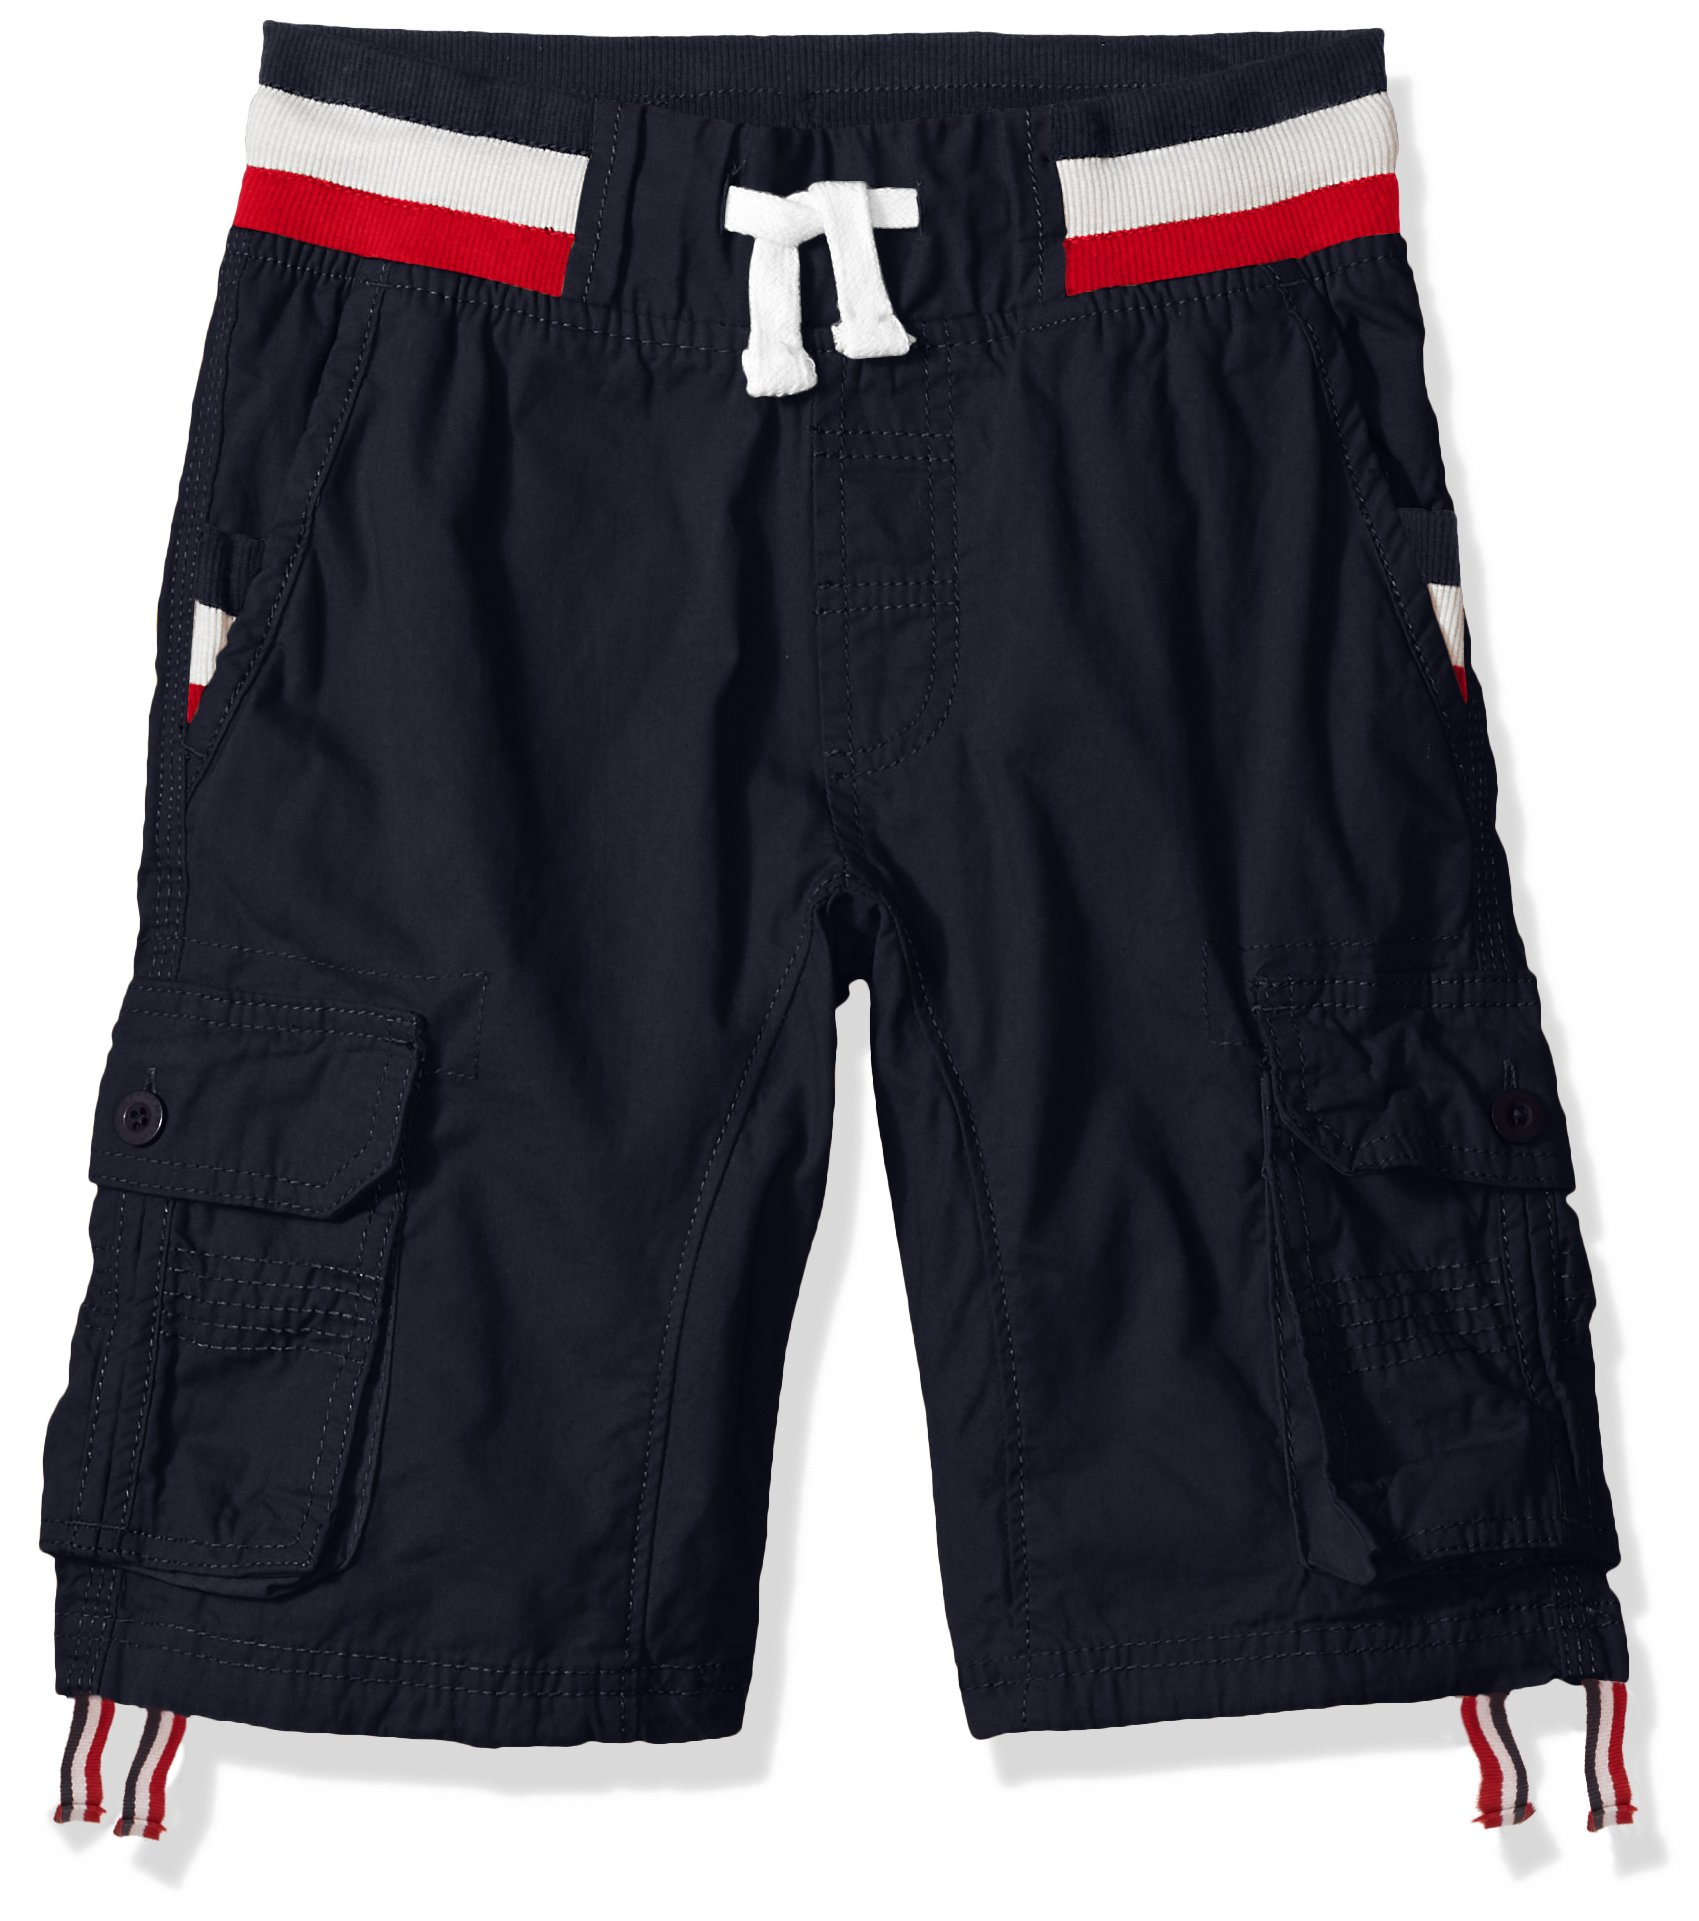 Southpole Big Boys' Twill Cargo Jogger Shorts in Basic Solid Colors, Navy Stripe, X-Large